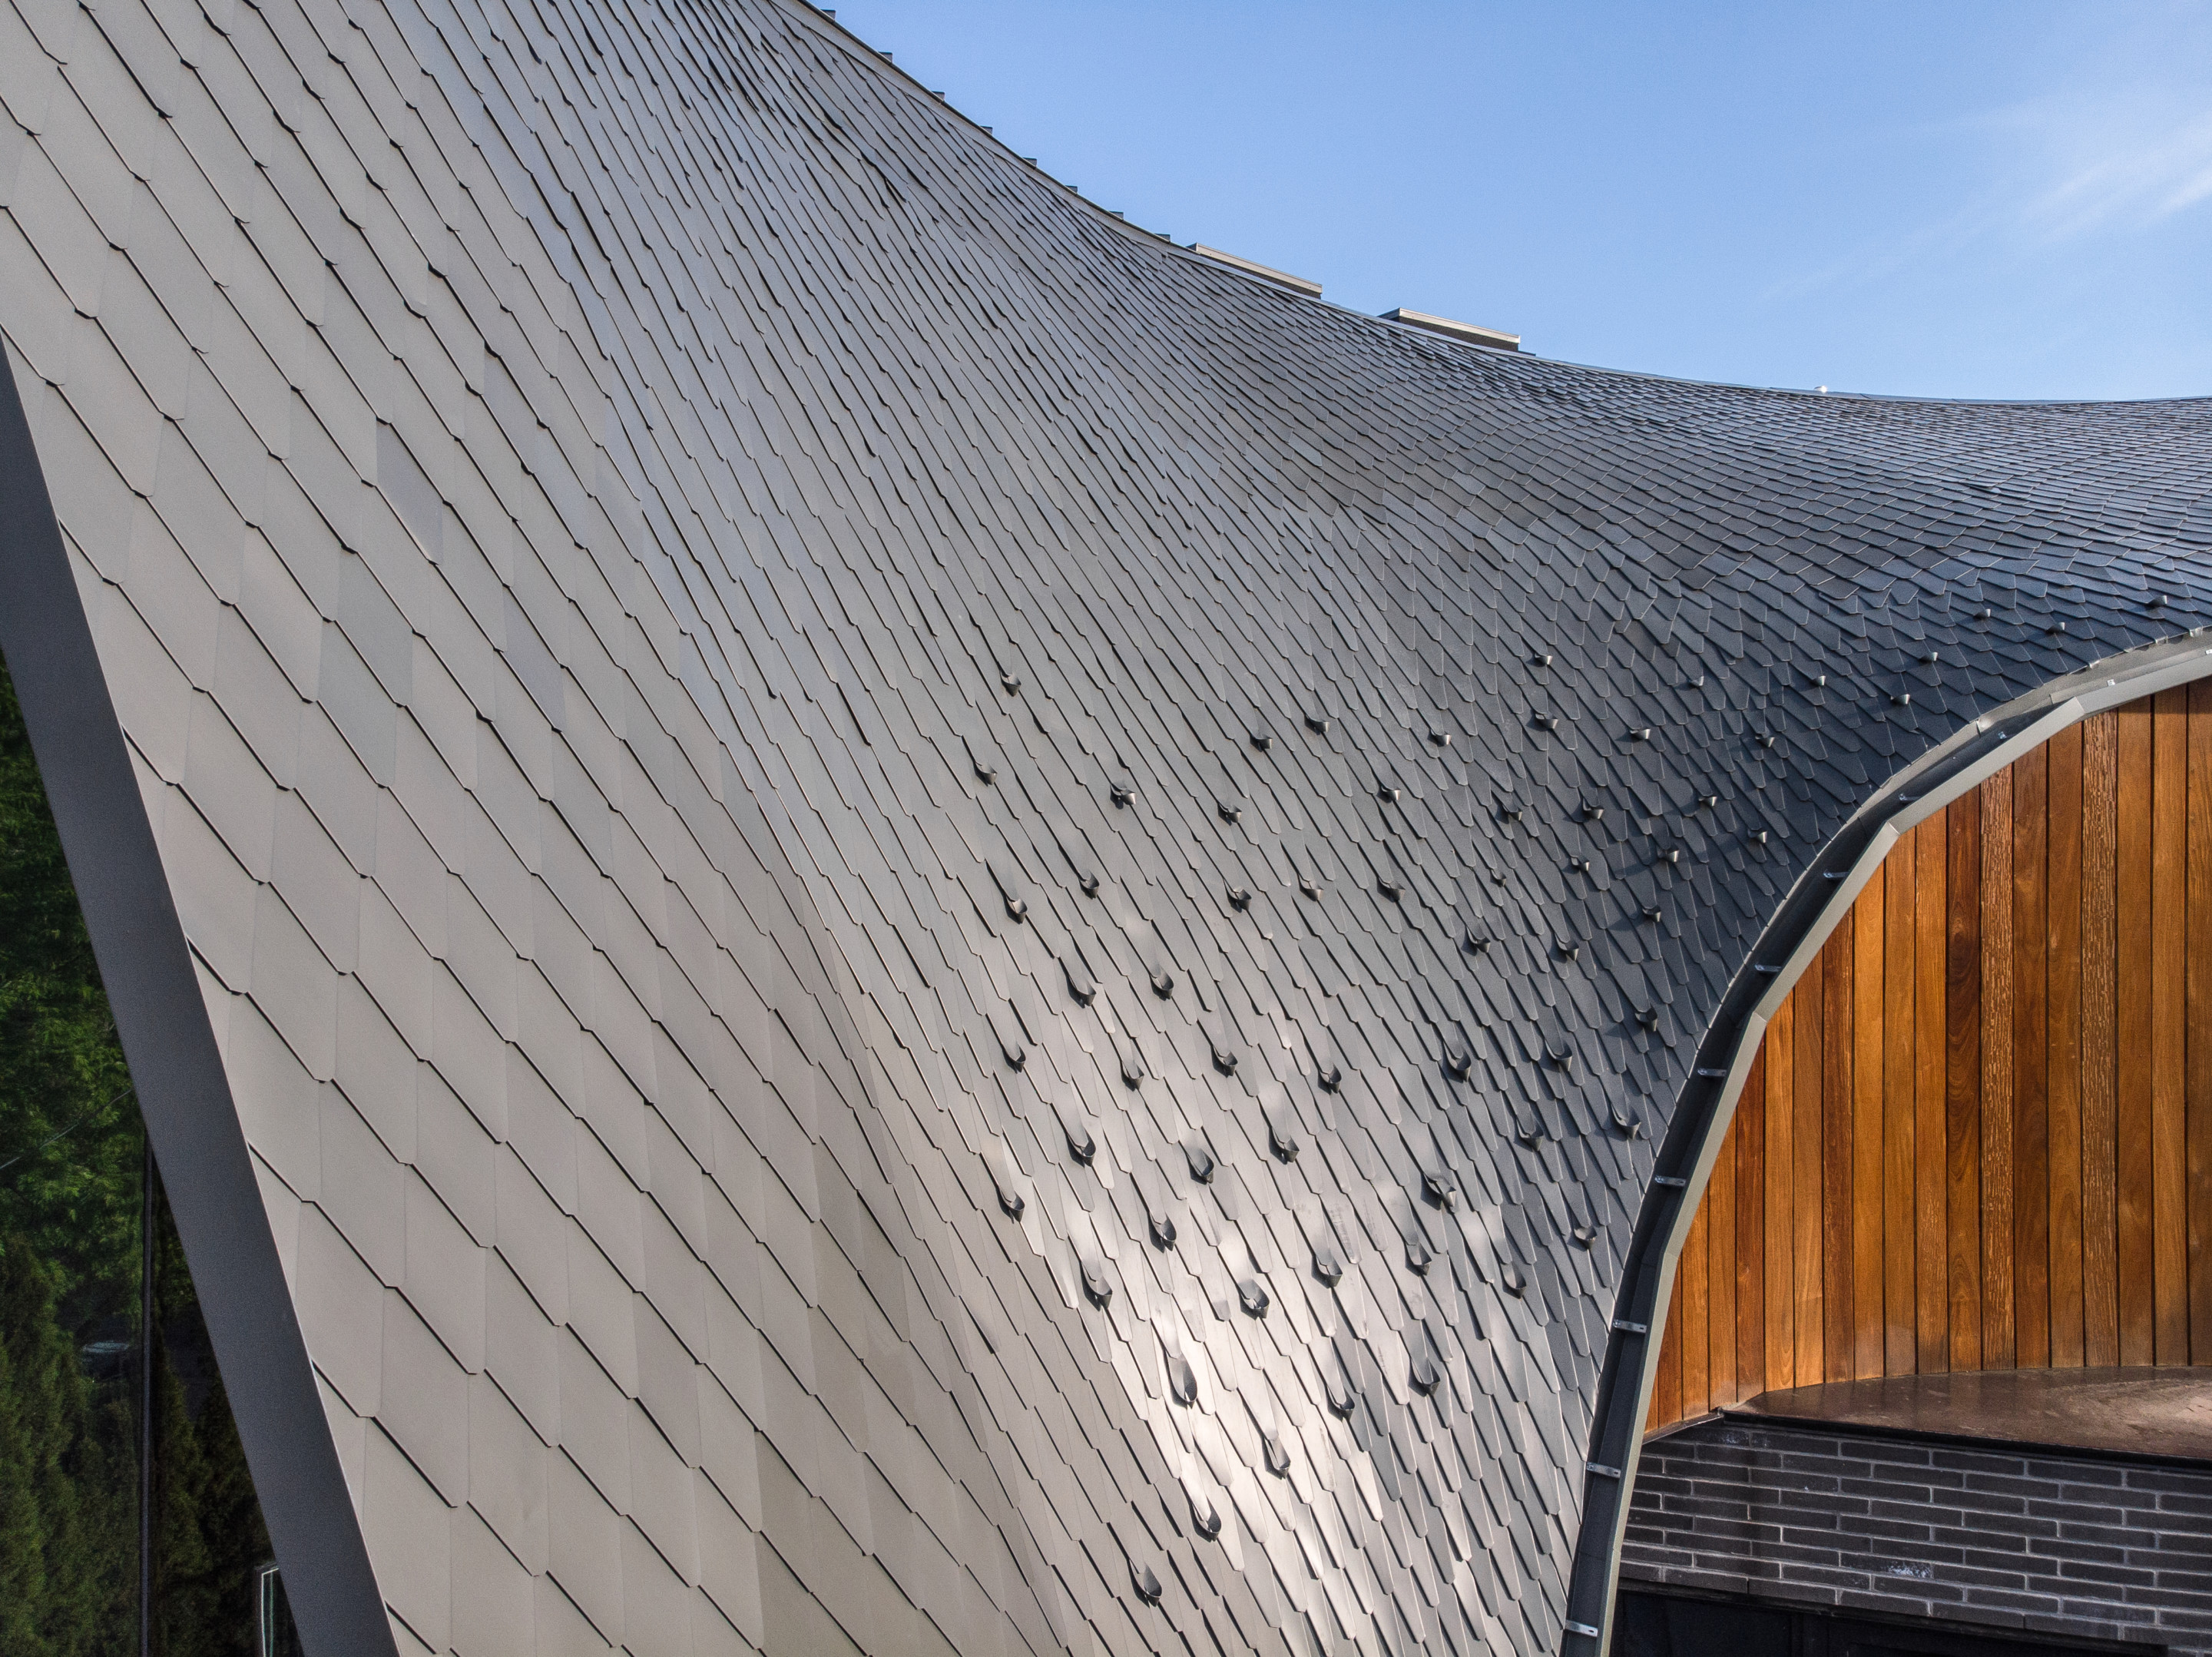 a zinc roof curved with dramatic slope